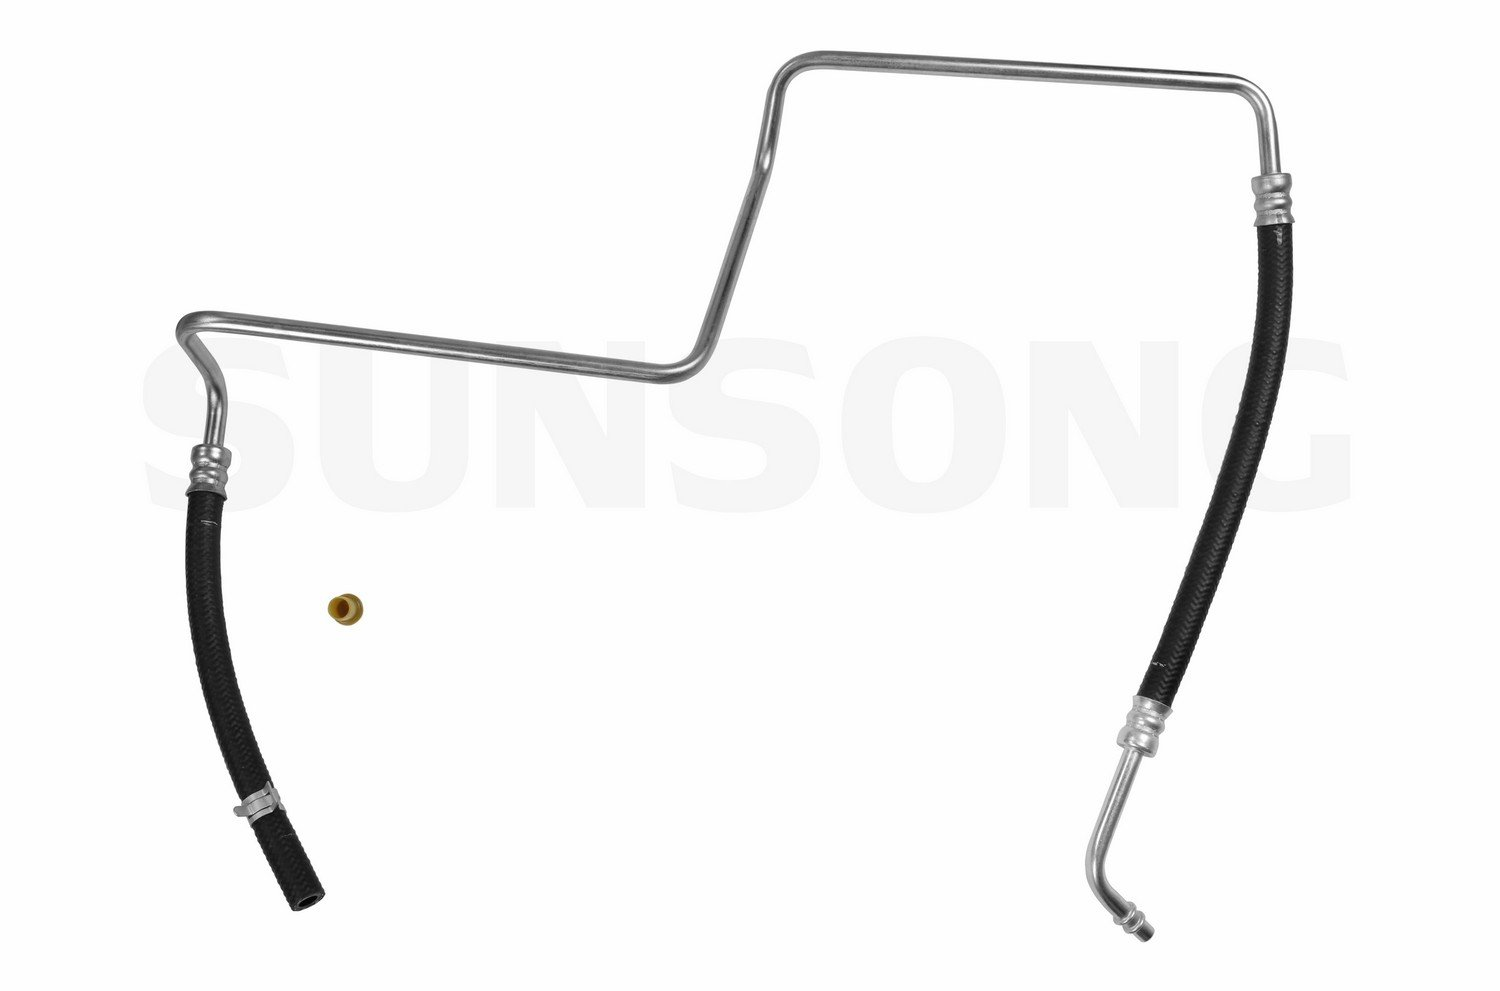 Sunsong 3401143 Power Steering Return Hose Assembly (Buick, Chevrolet, GMC, Isuzu, Oldsmobile, Saab)